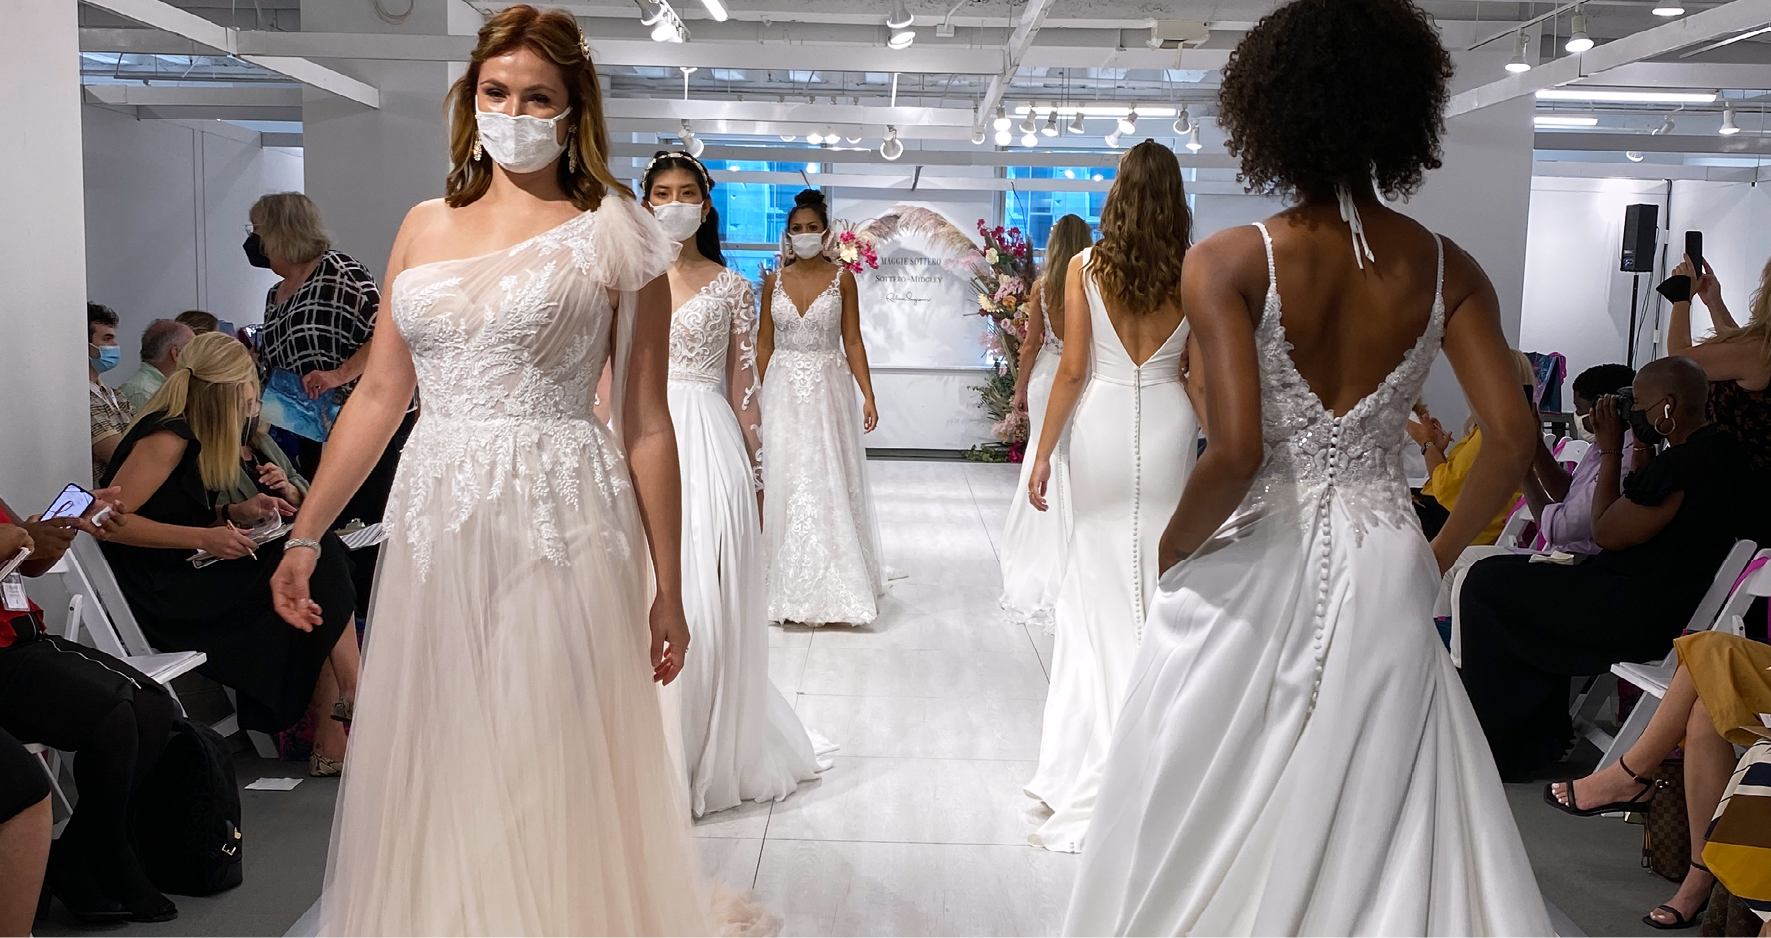 Models Walking on Runway at Chicago Bridal Market Showing Off Maggie Sottero's Hottest Runway Wedding Dresses for This Season